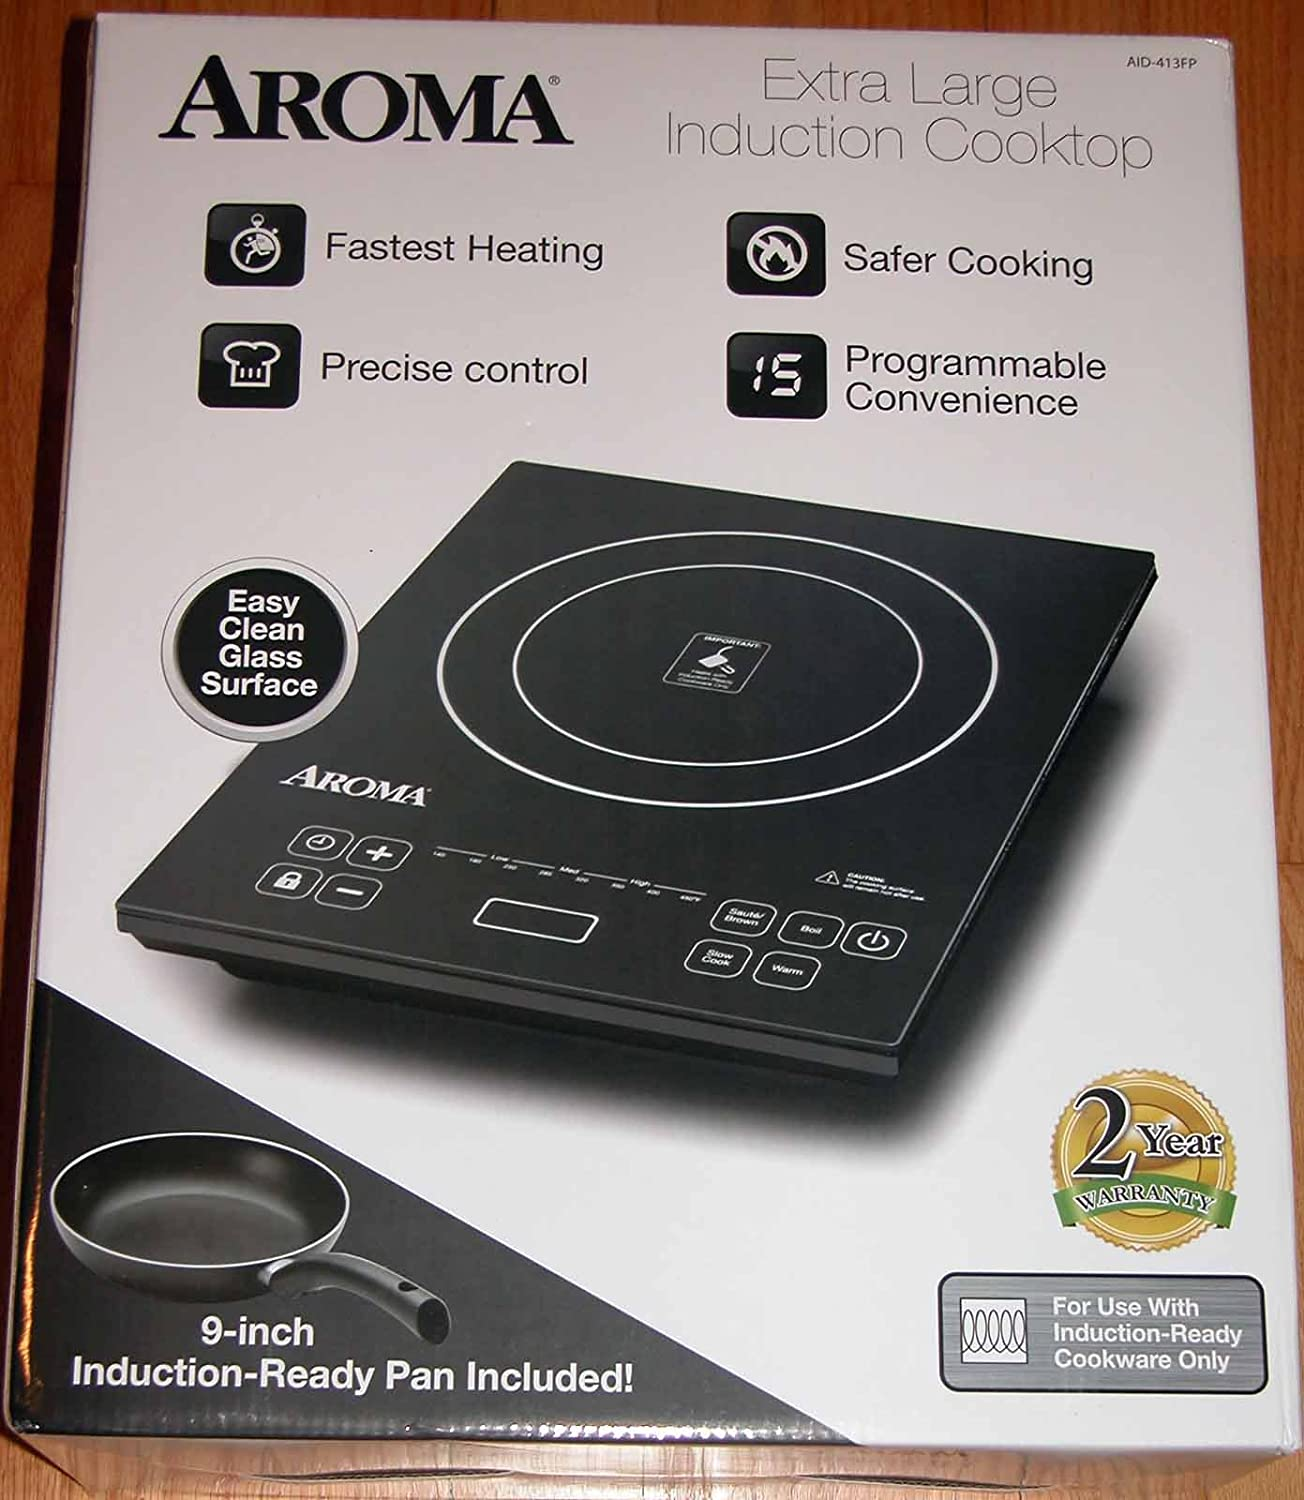 Aroma Extra Large Induction Cooktop AID-413FP